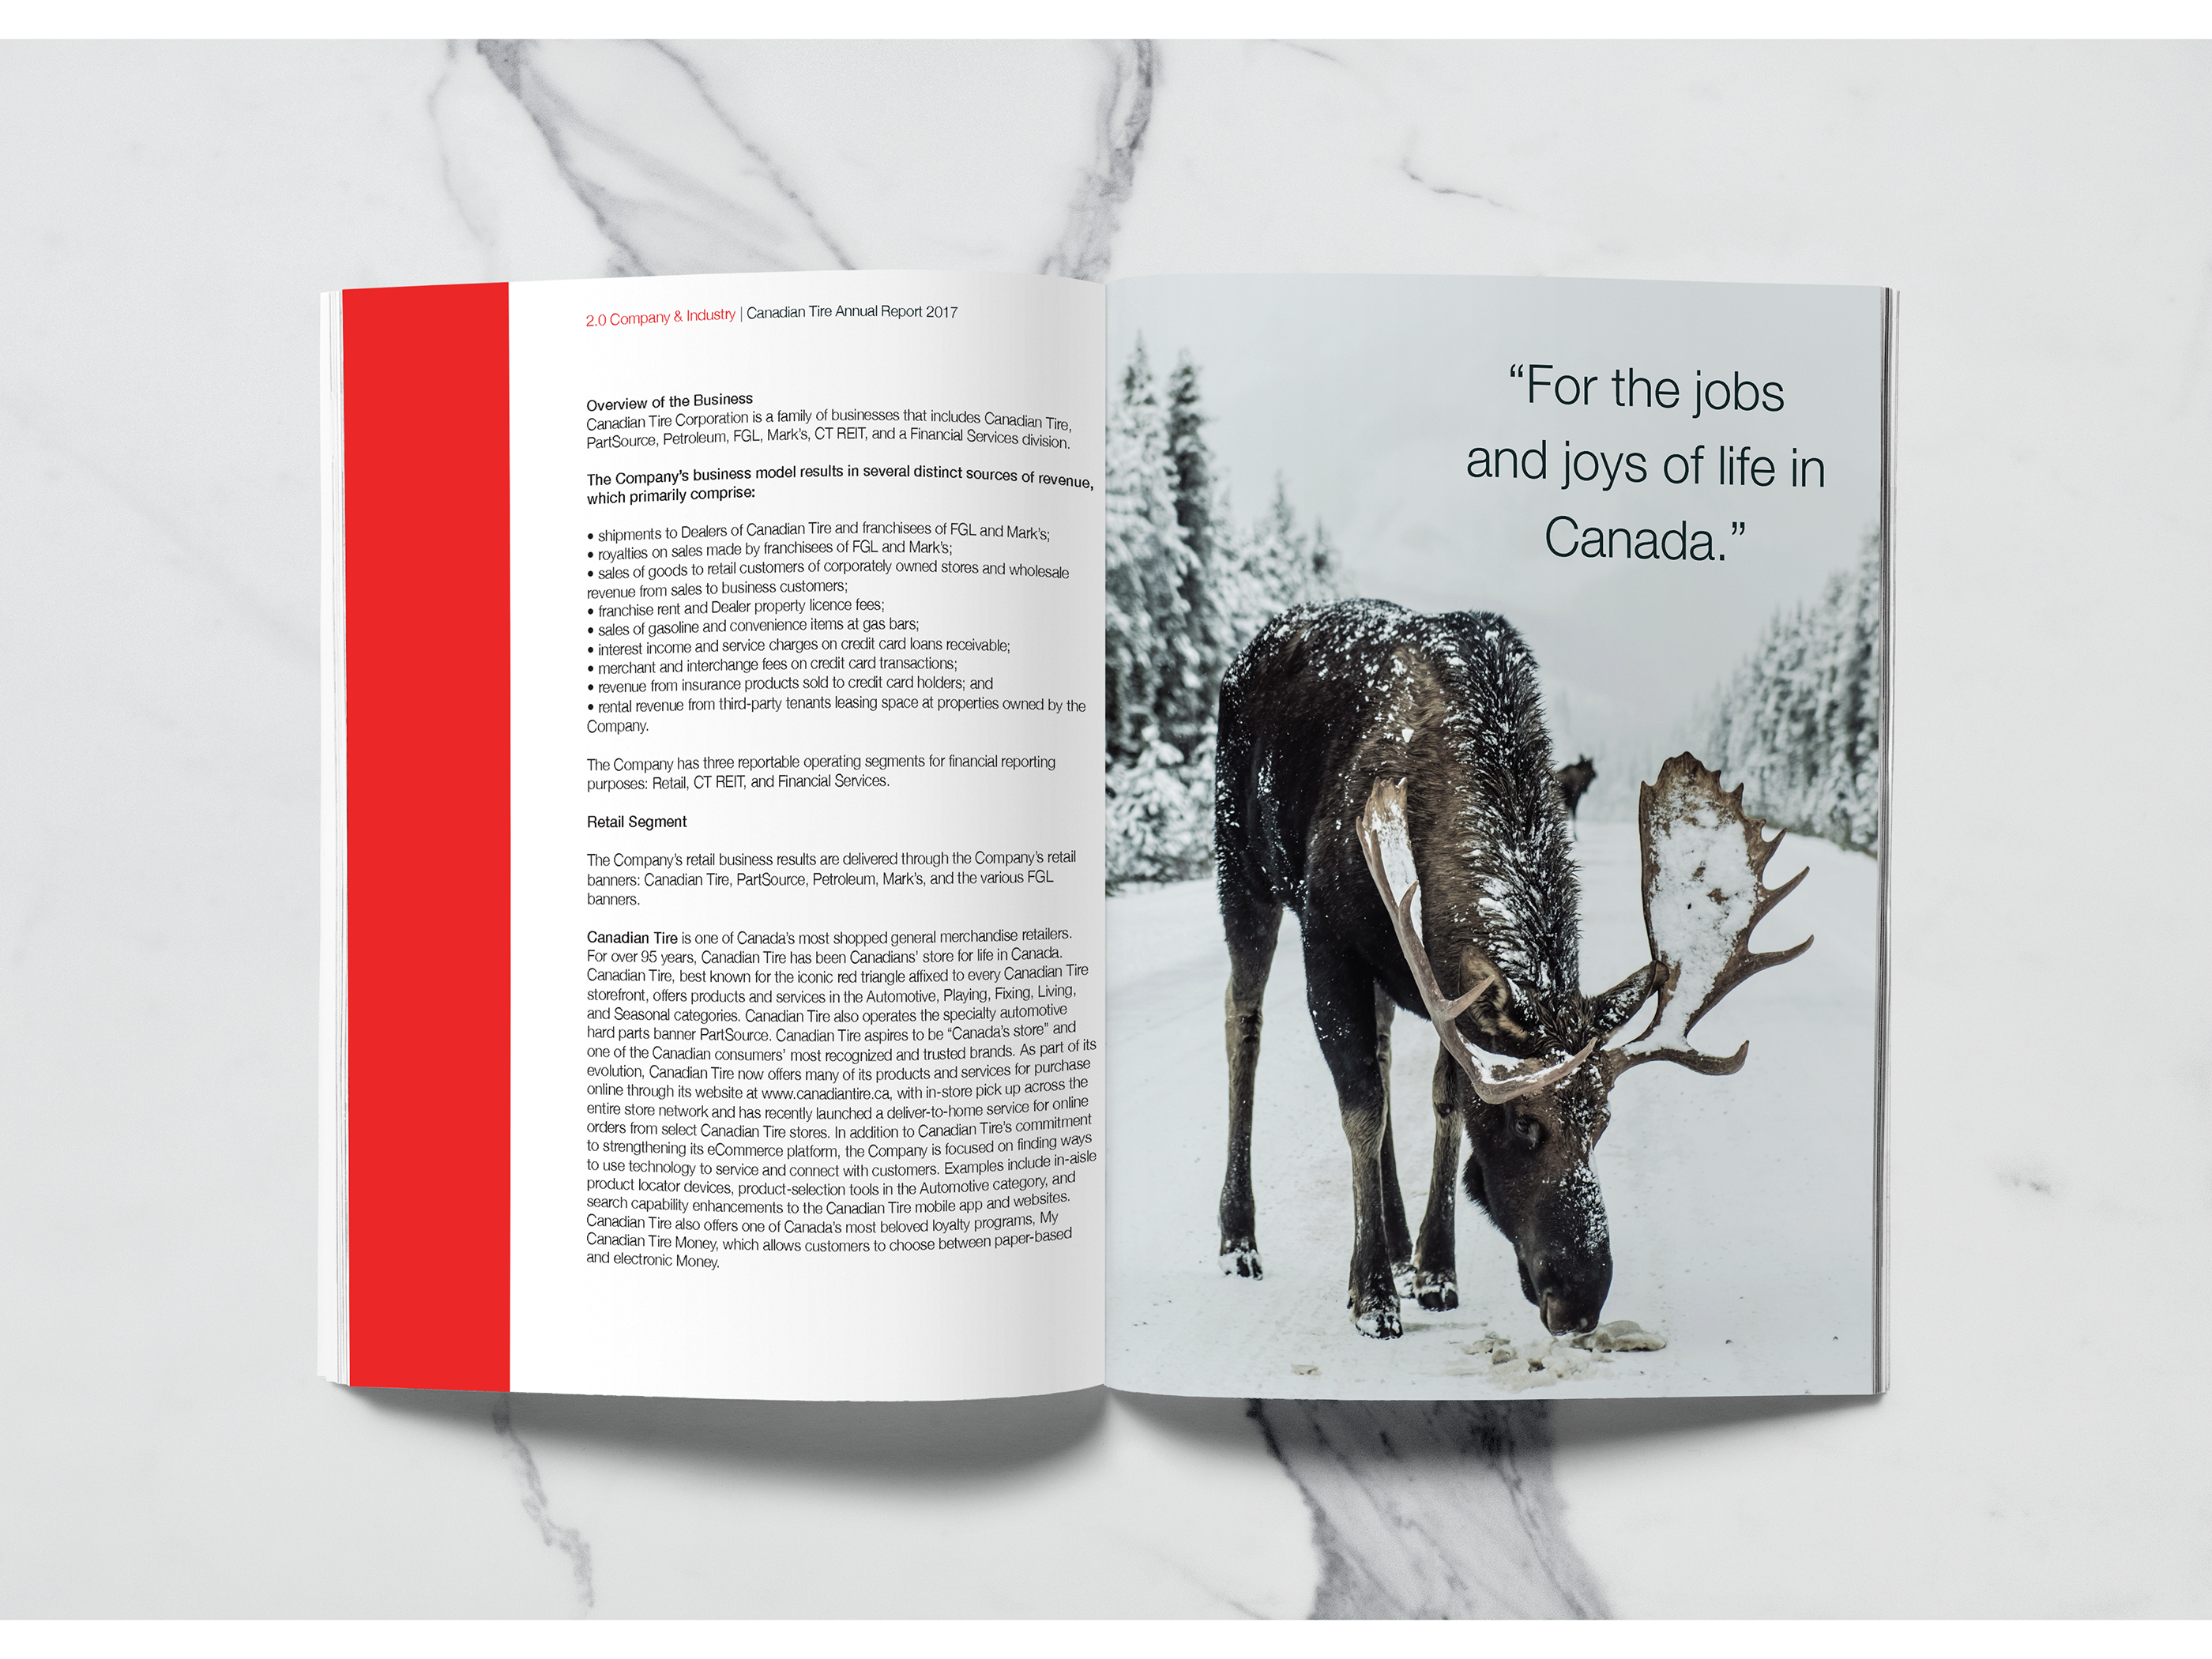 Canadian Tire Annual Report on Behance